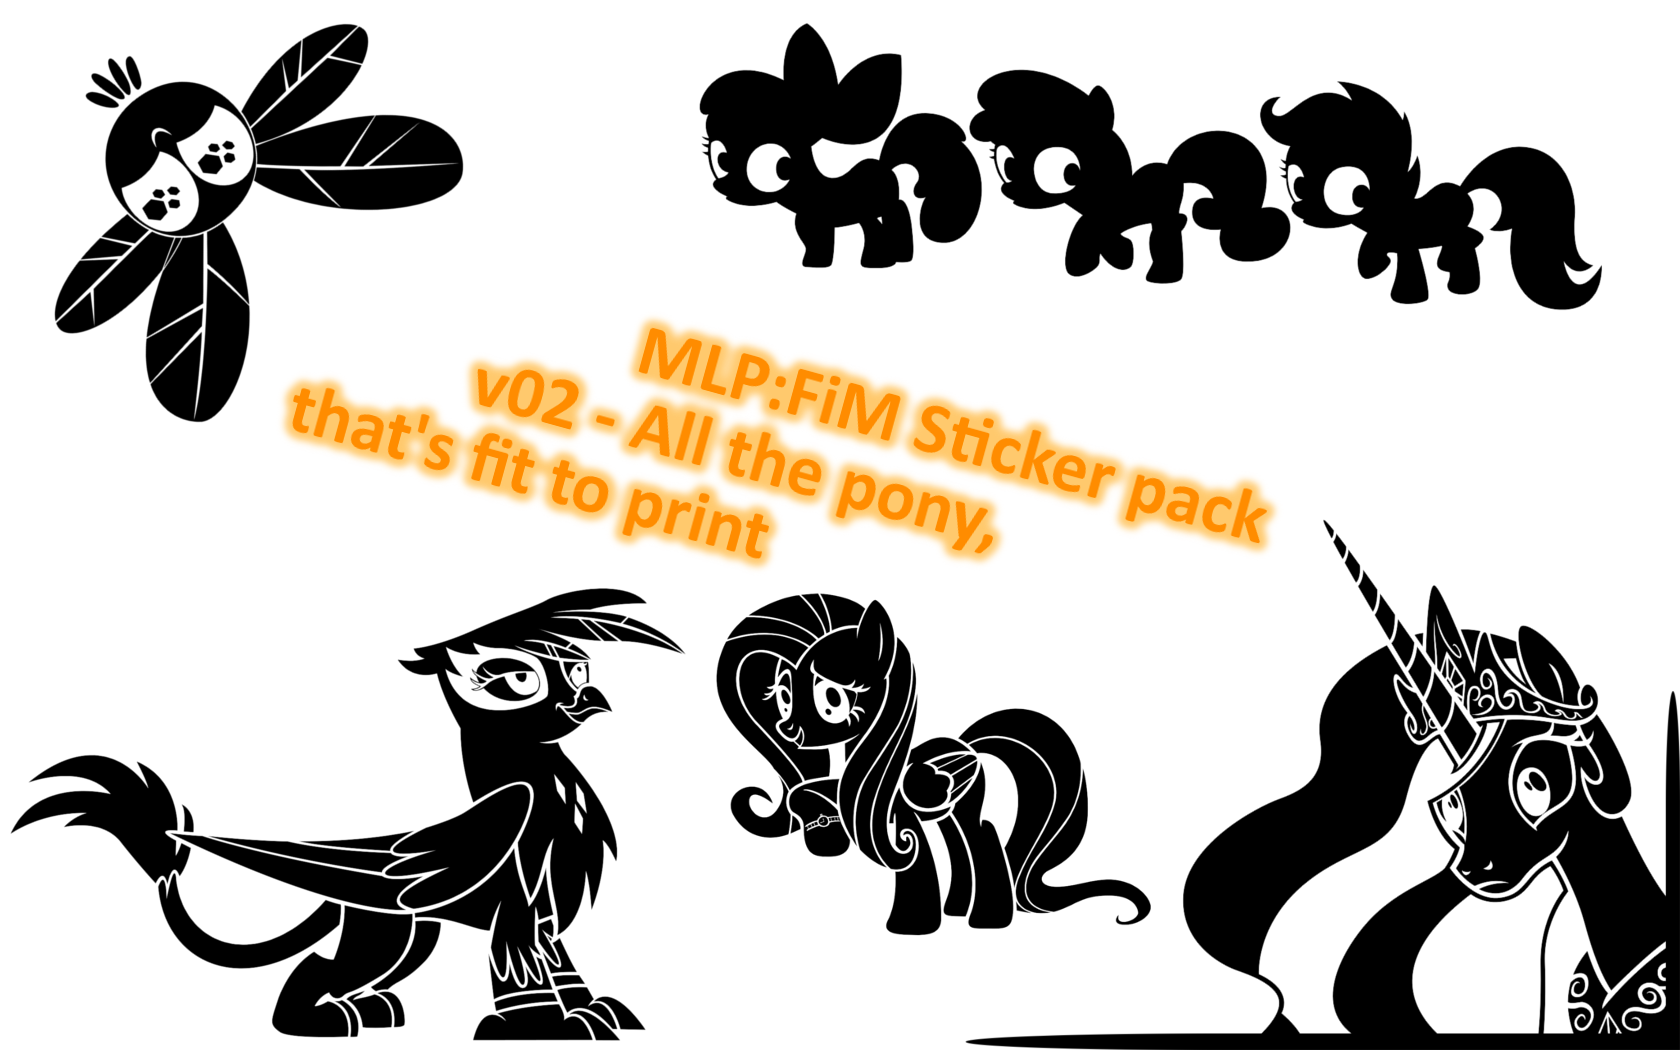 Pony sticker pack v02 by PoldekPL